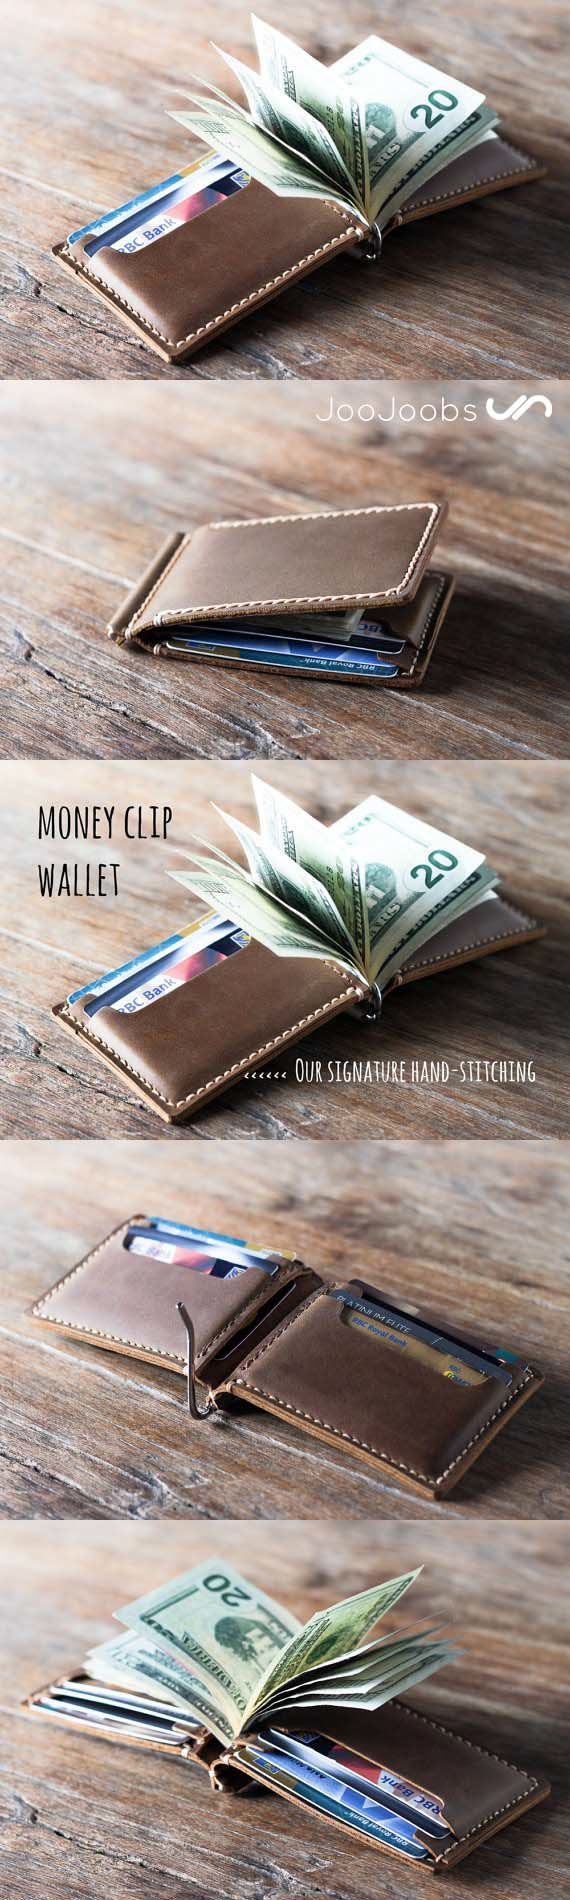 This leather money clip wallet is handmade and hand-stitched. Inside there are 4 card slots which can hold 2 cards each for a total of 8 cards. Instead of a cash pocket, we have replaced it with an easy to use, money clip. #JooJoobs #moneyclip